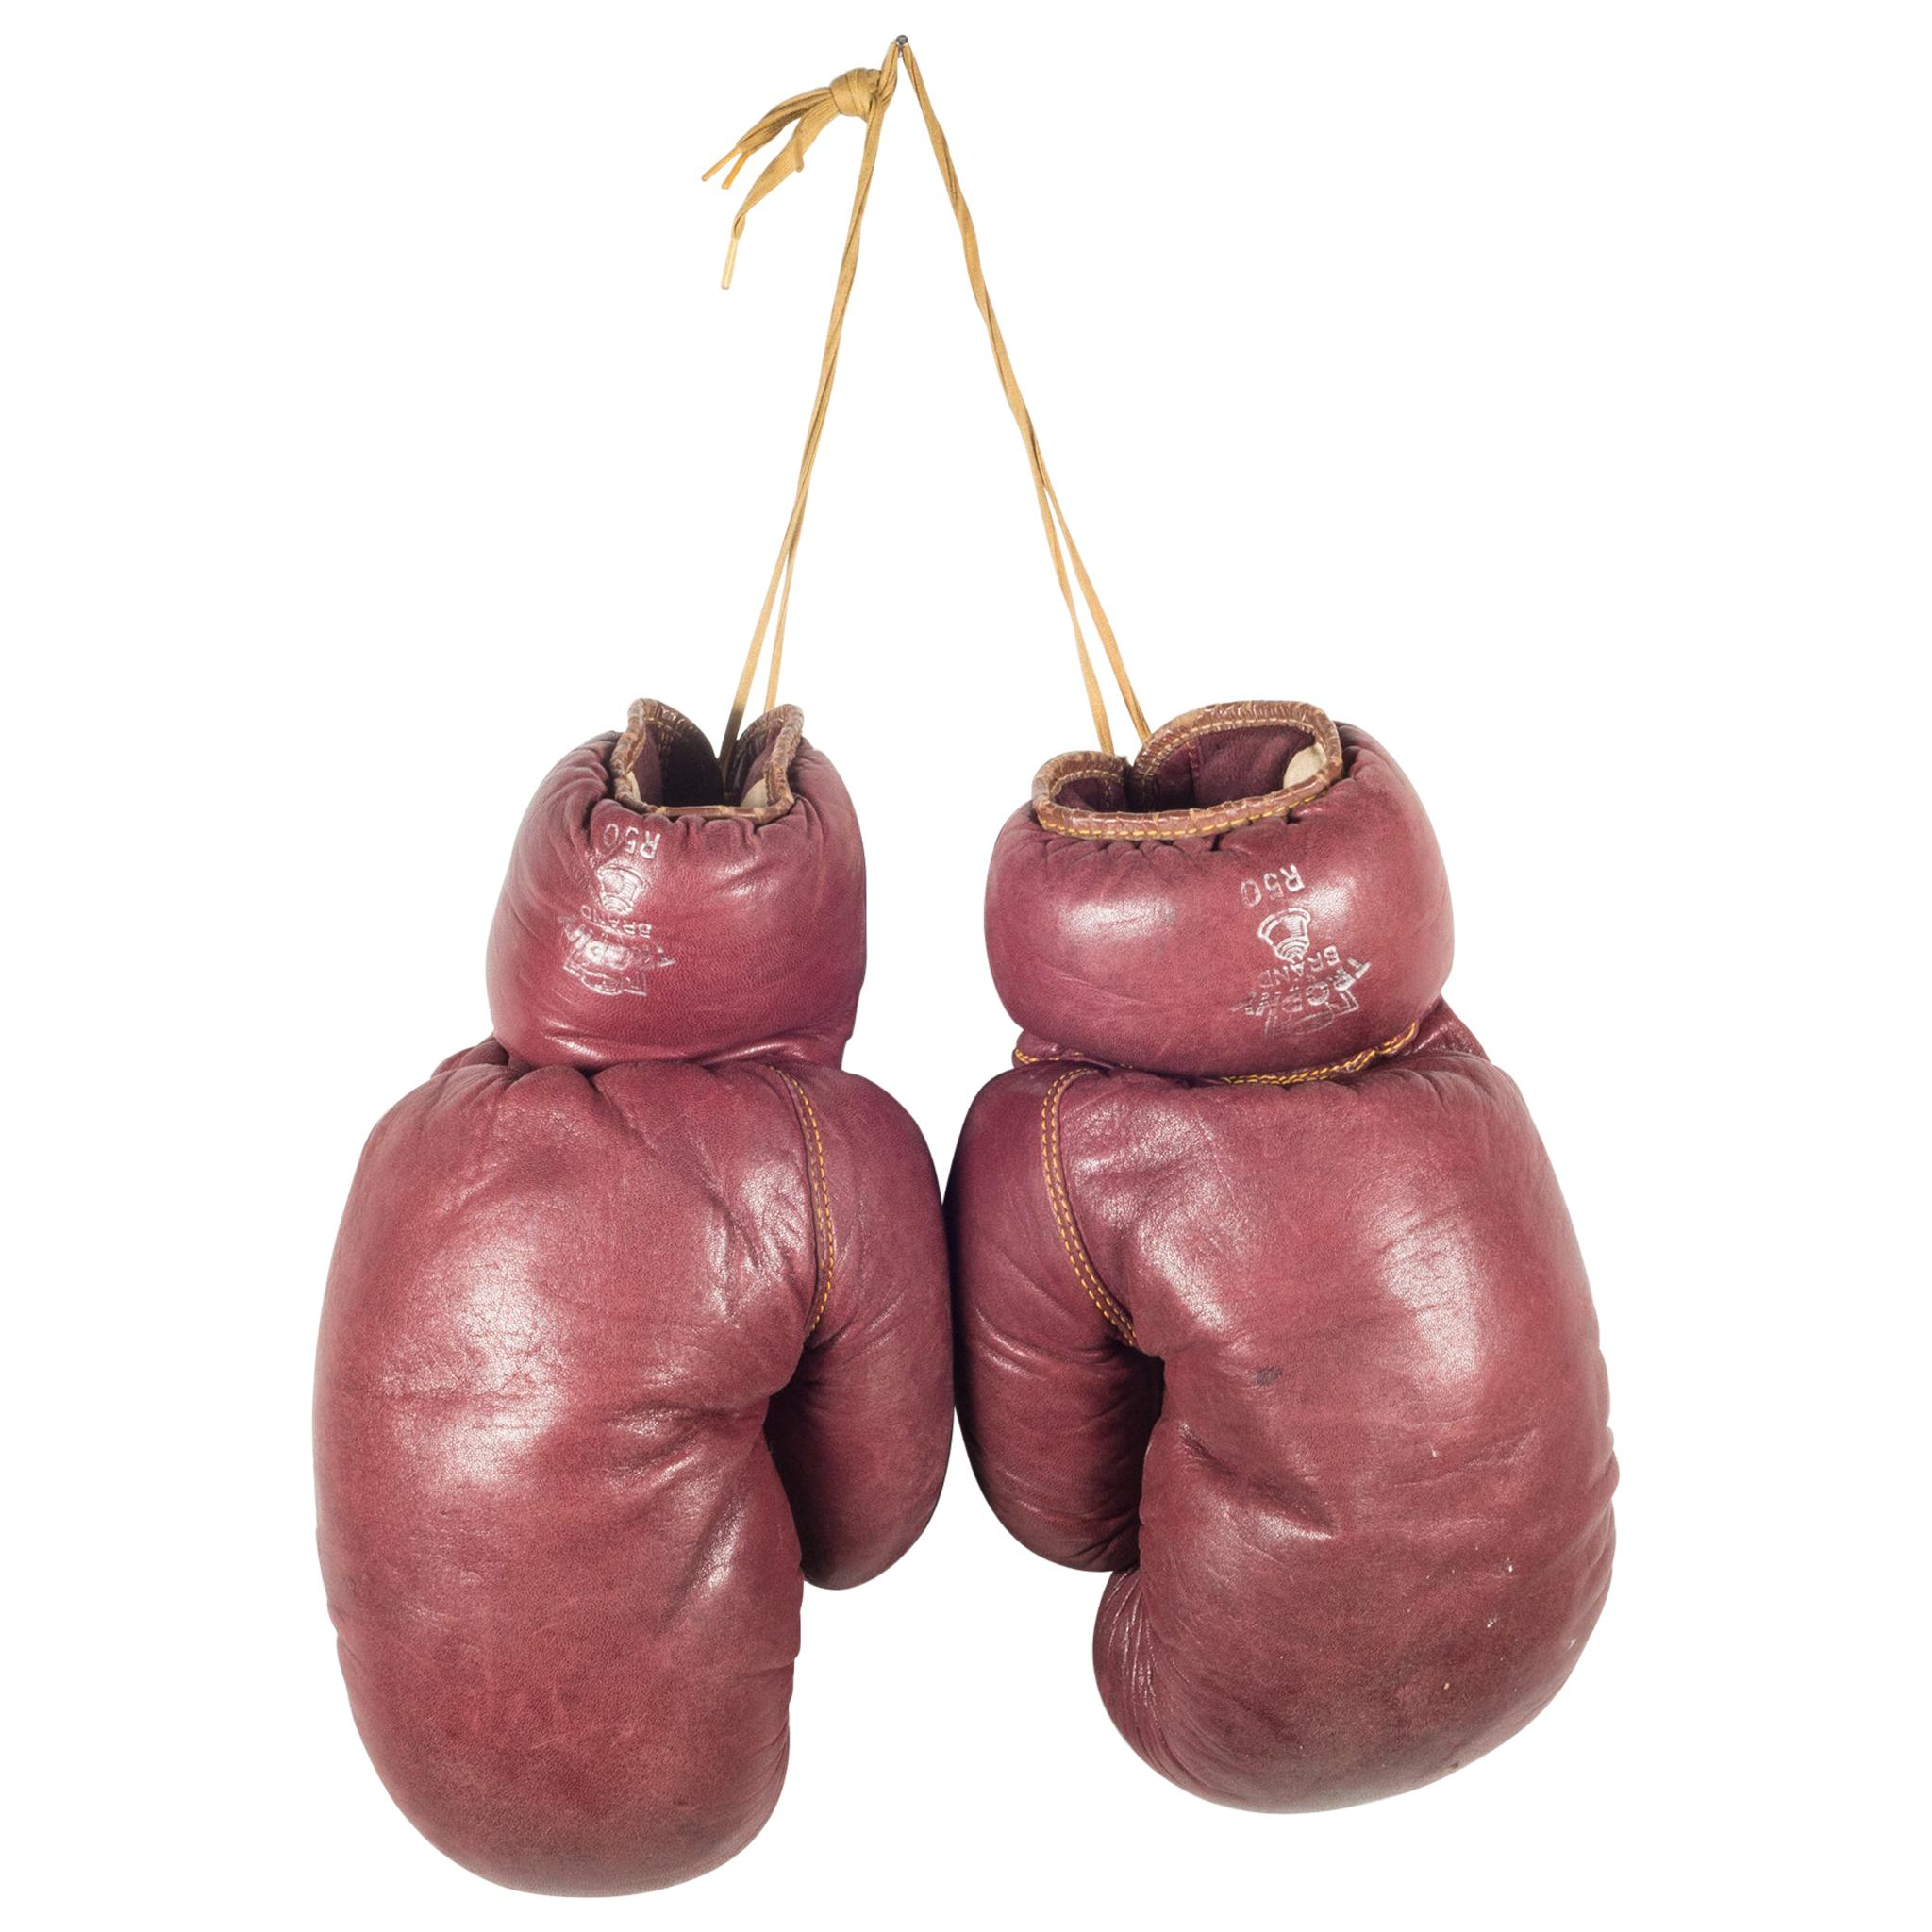 Trophy Brand Horse Hair and Leather Boxing Gloves, circa 1950